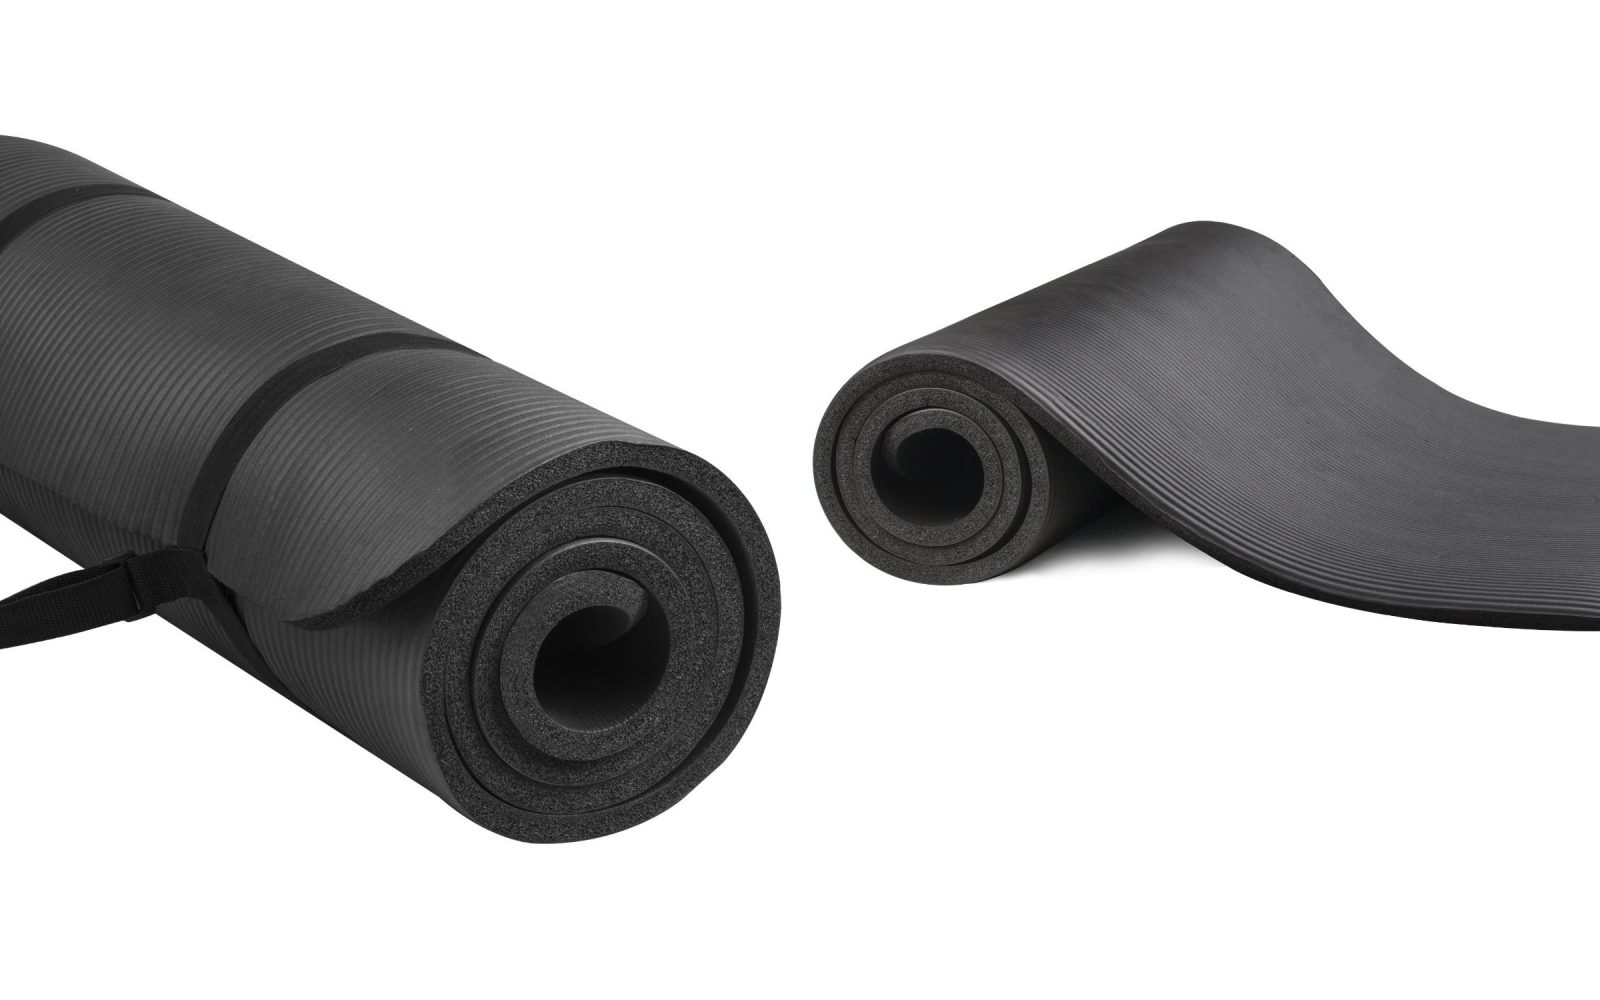 online here hot-selling genuine fair price Sports/Fitness: BalanceFrom Yoga Mat w/ Carrying Strap $16 ...